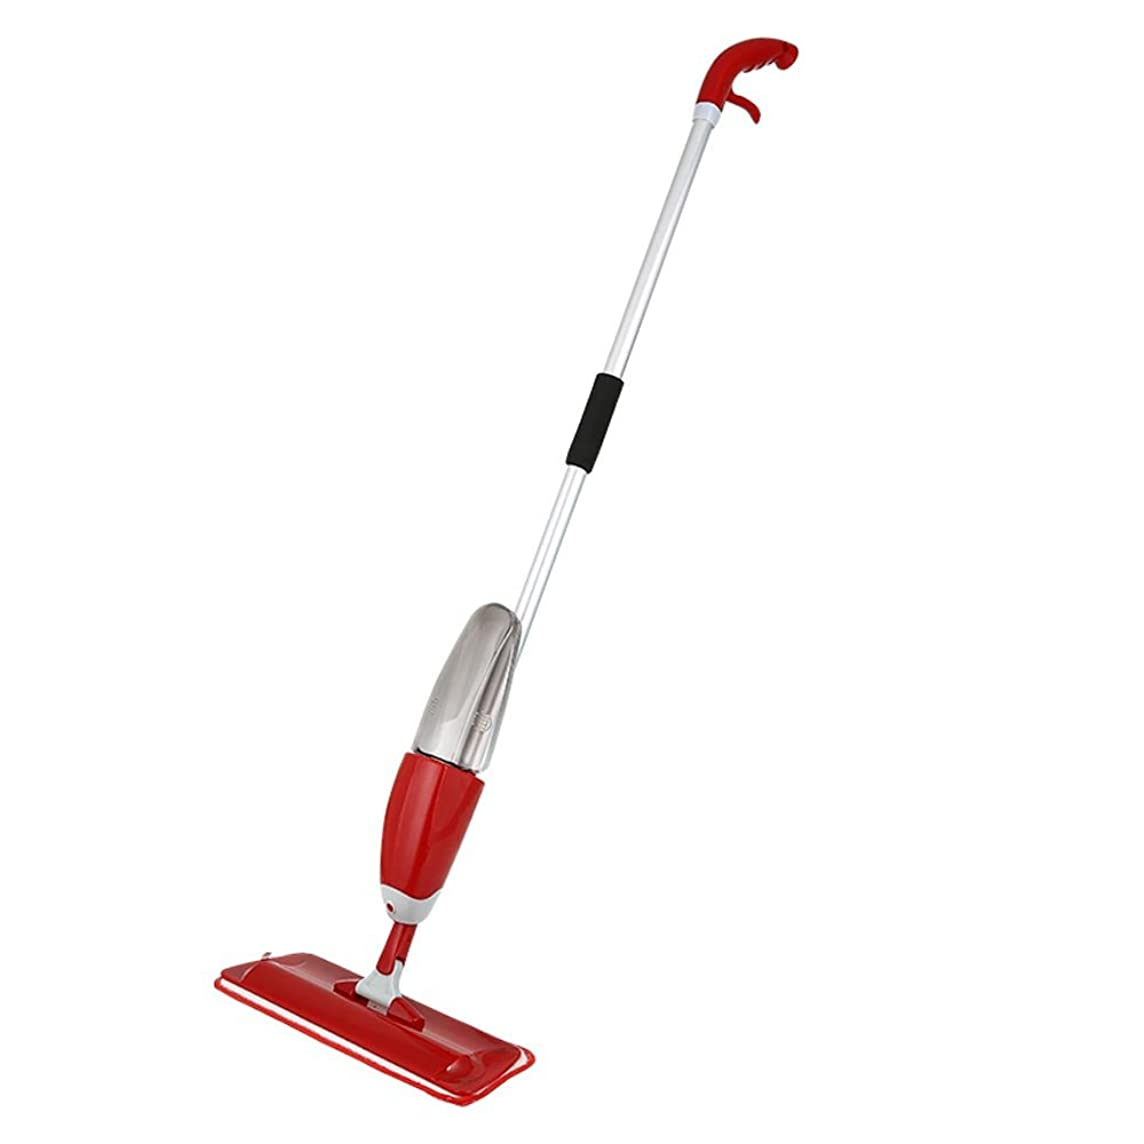 Pstars Practical Spray Mop Household Dust Cleaning for Floor Cleaning Reusable Microfiber Pad Red